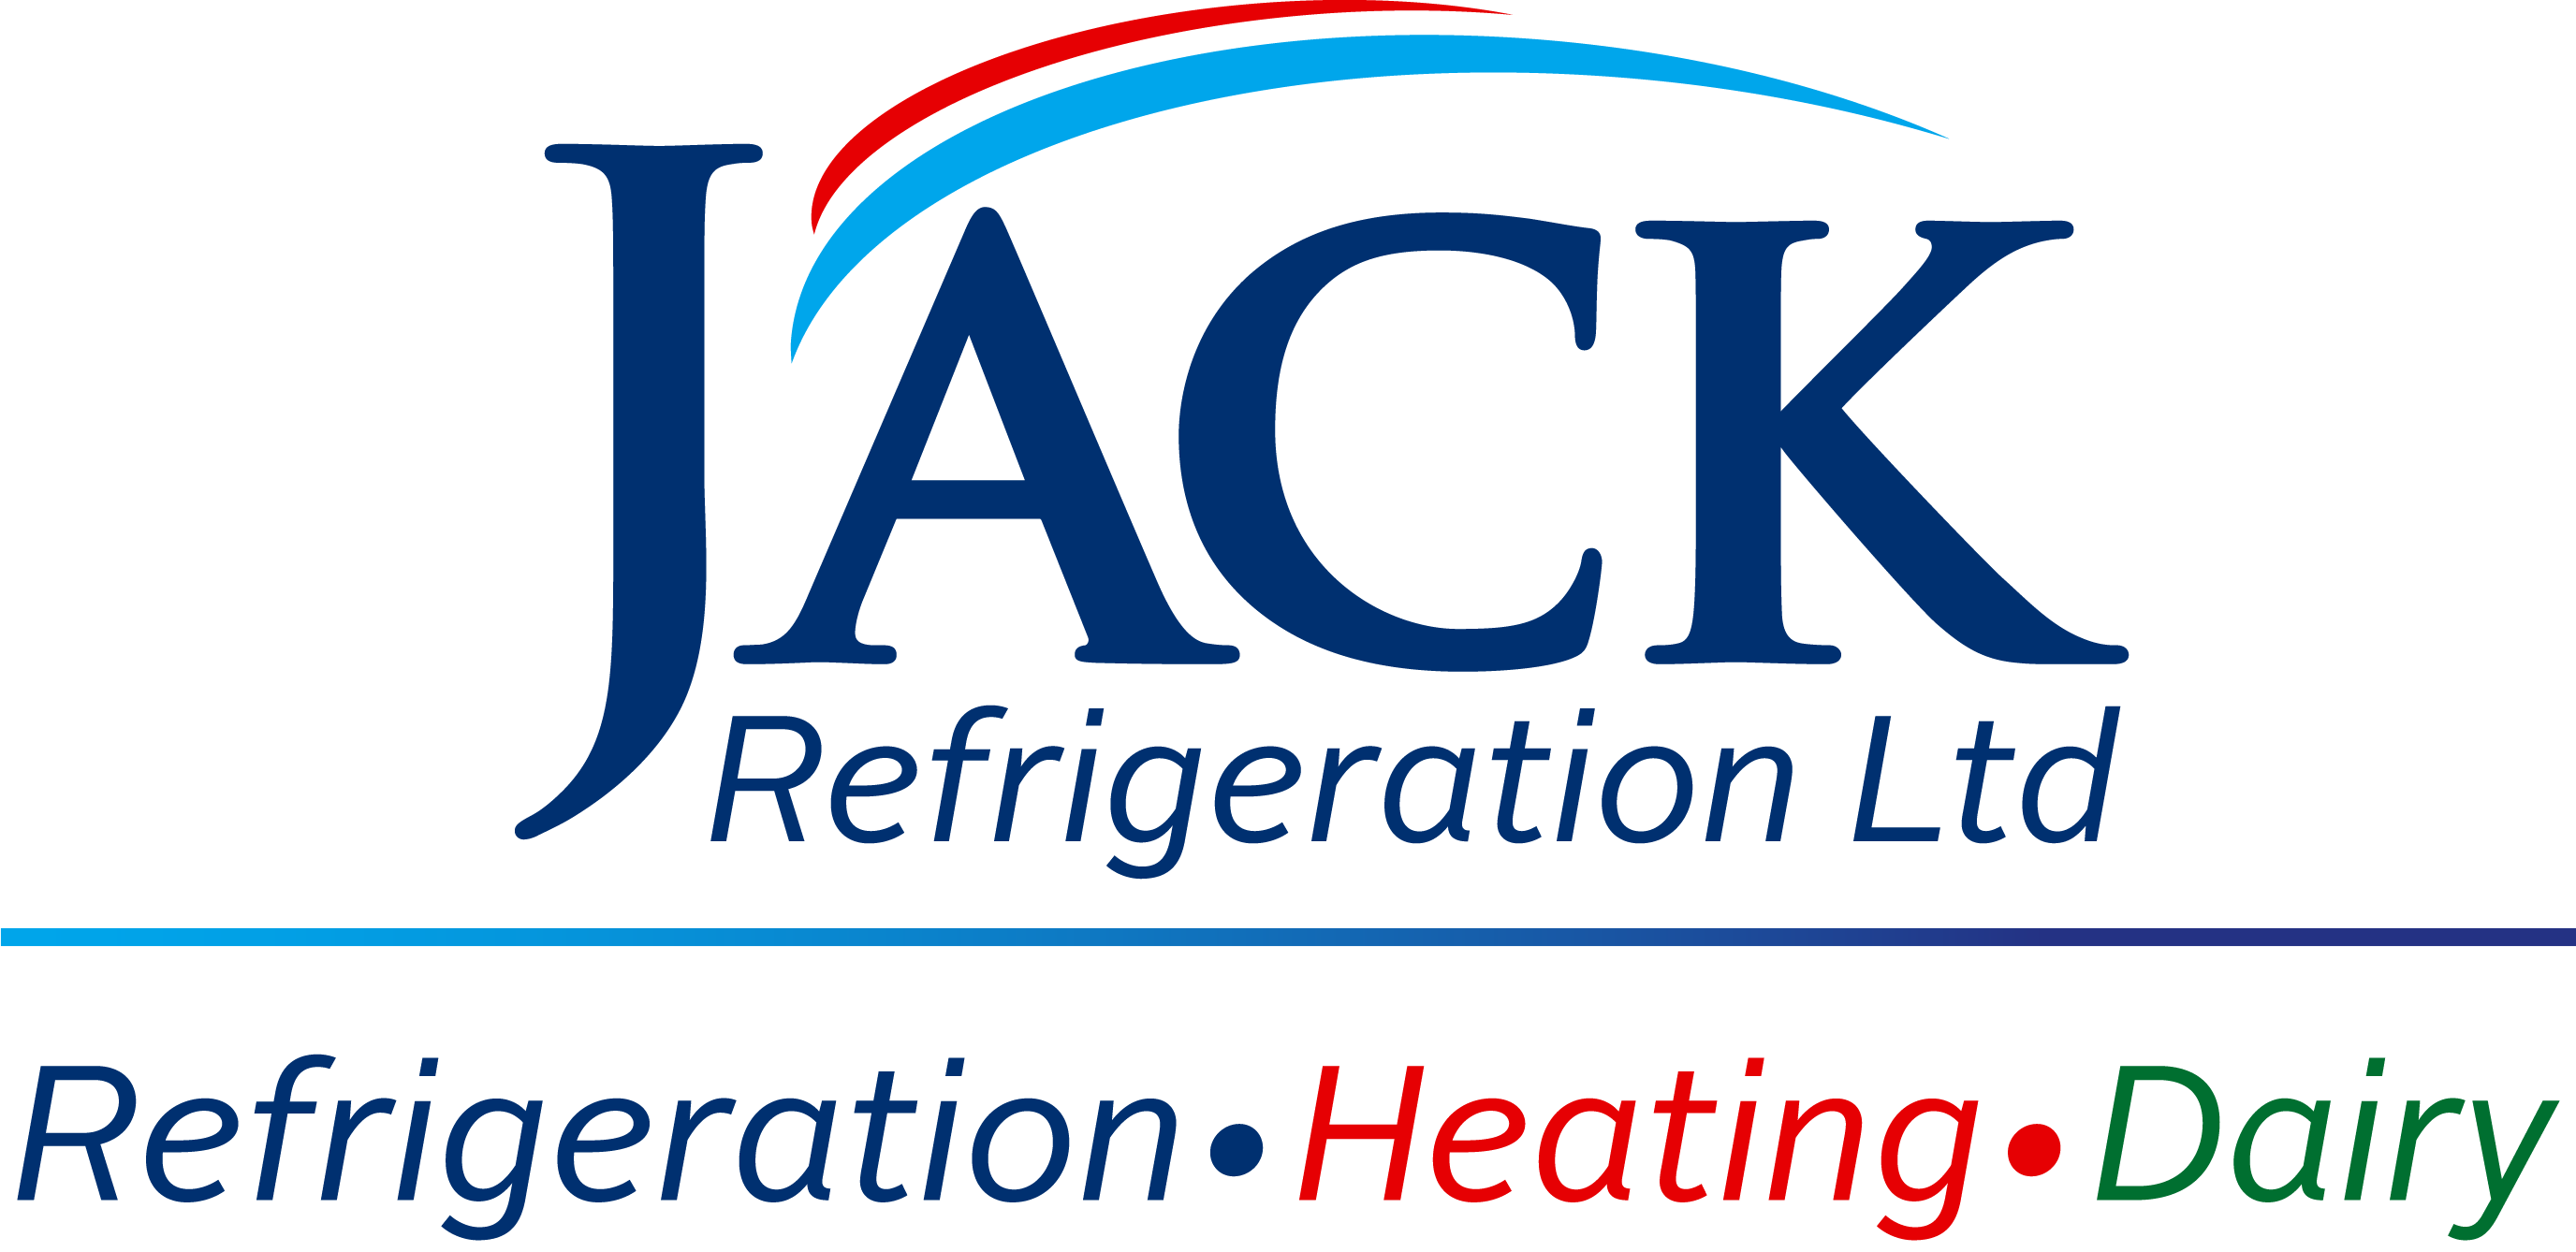 Jack Refrigeration Ltd